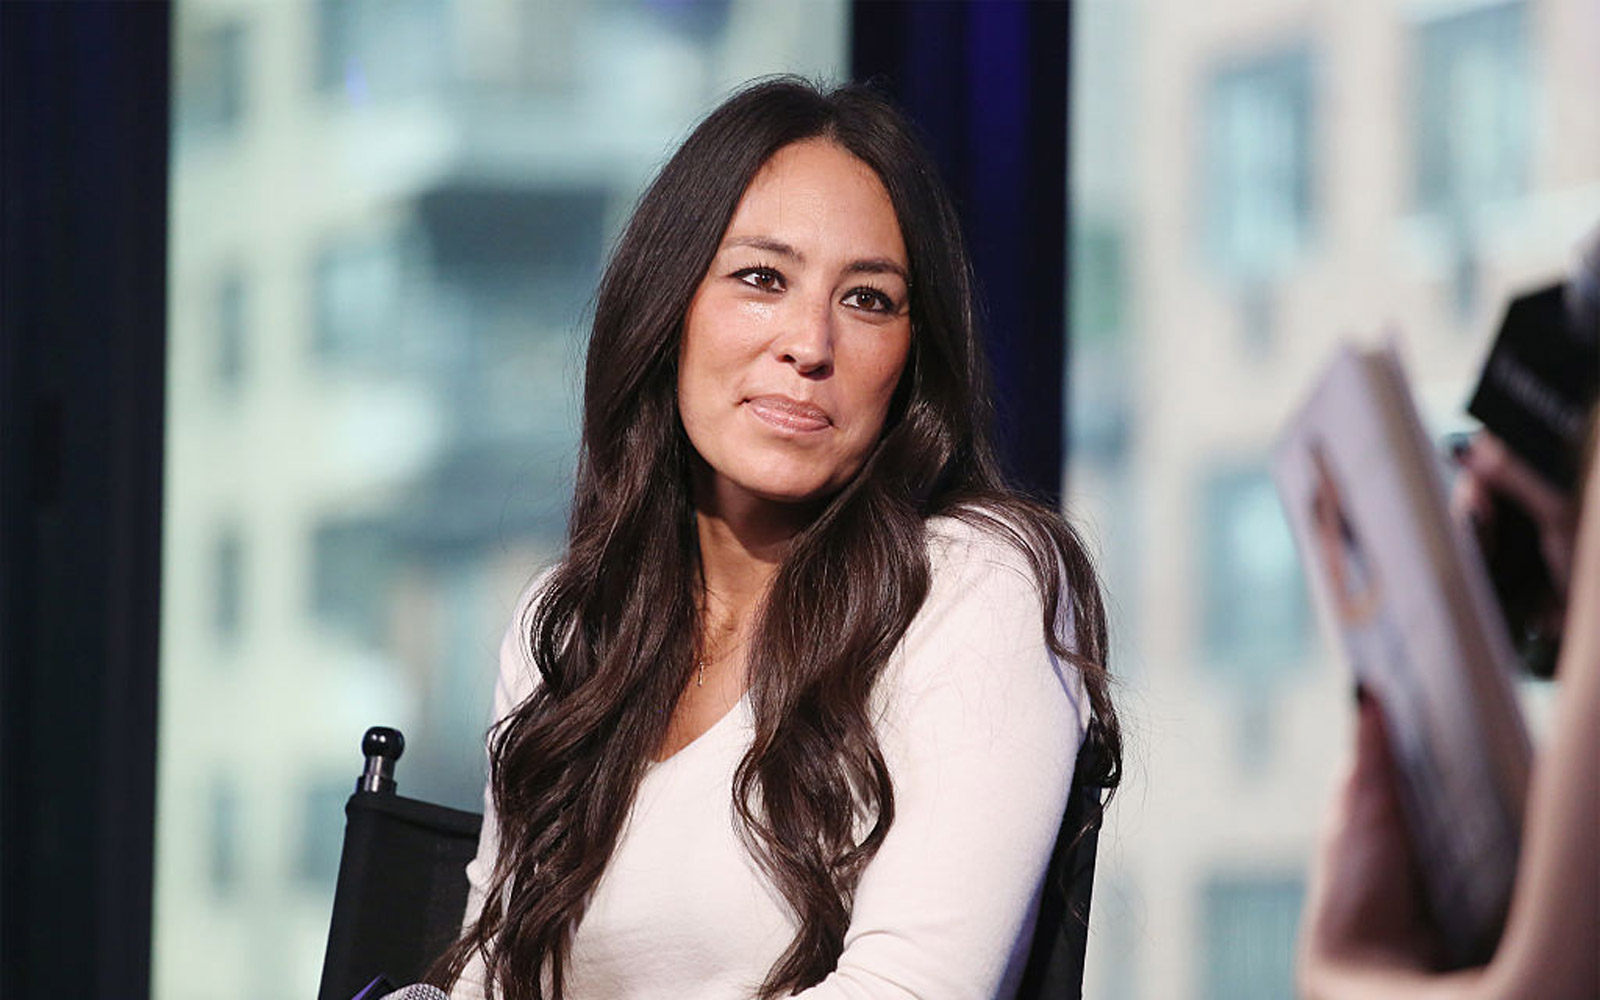 """NEW YORK, NY - OCTOBER 19:  The Build Series presents Joanna Gaines to discuss the new book """"The Magnolia Story"""" at AOL HQ on October 19, 2016 in New York City.  (Photo by Mireya Acierto/FilmMagic)"""